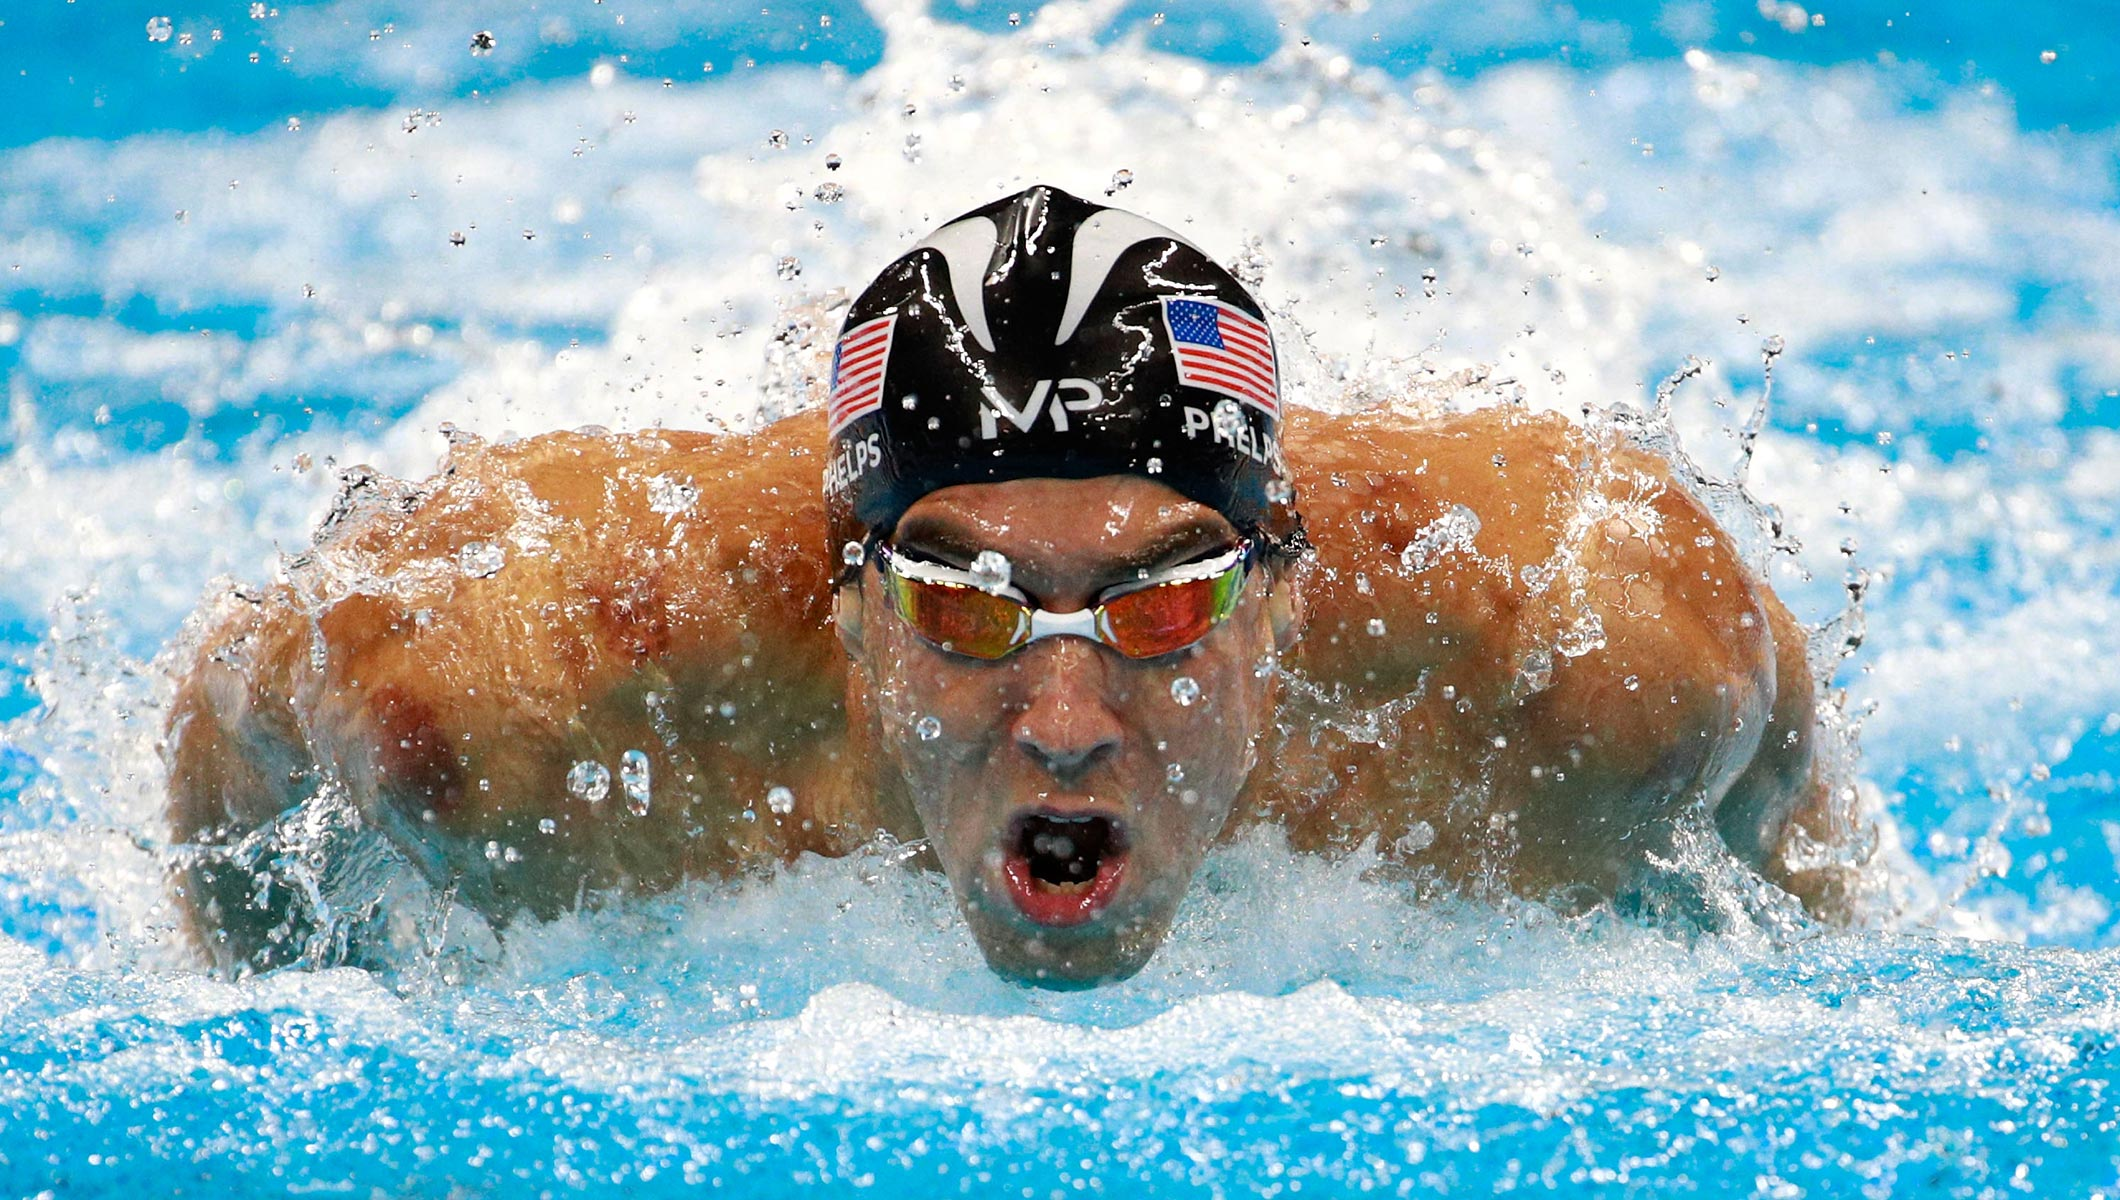 Rio 2016 Summer Olympics - results and video highlights